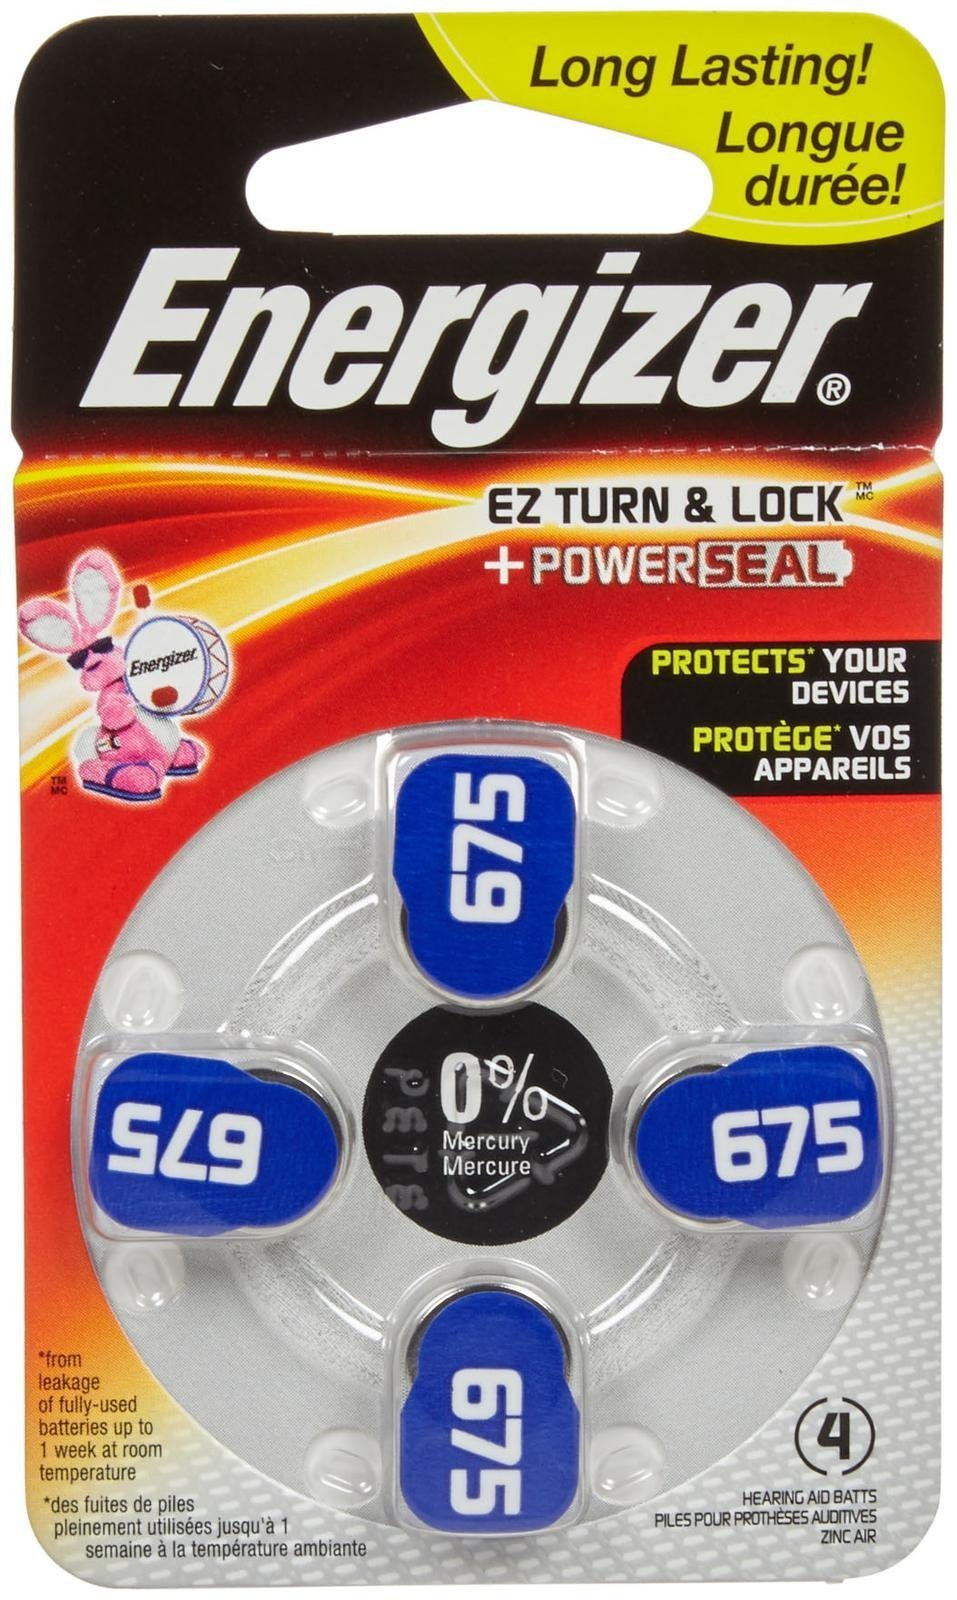 Energizer Size 675 Hearing Aid Battery - 4 ct by Energizer